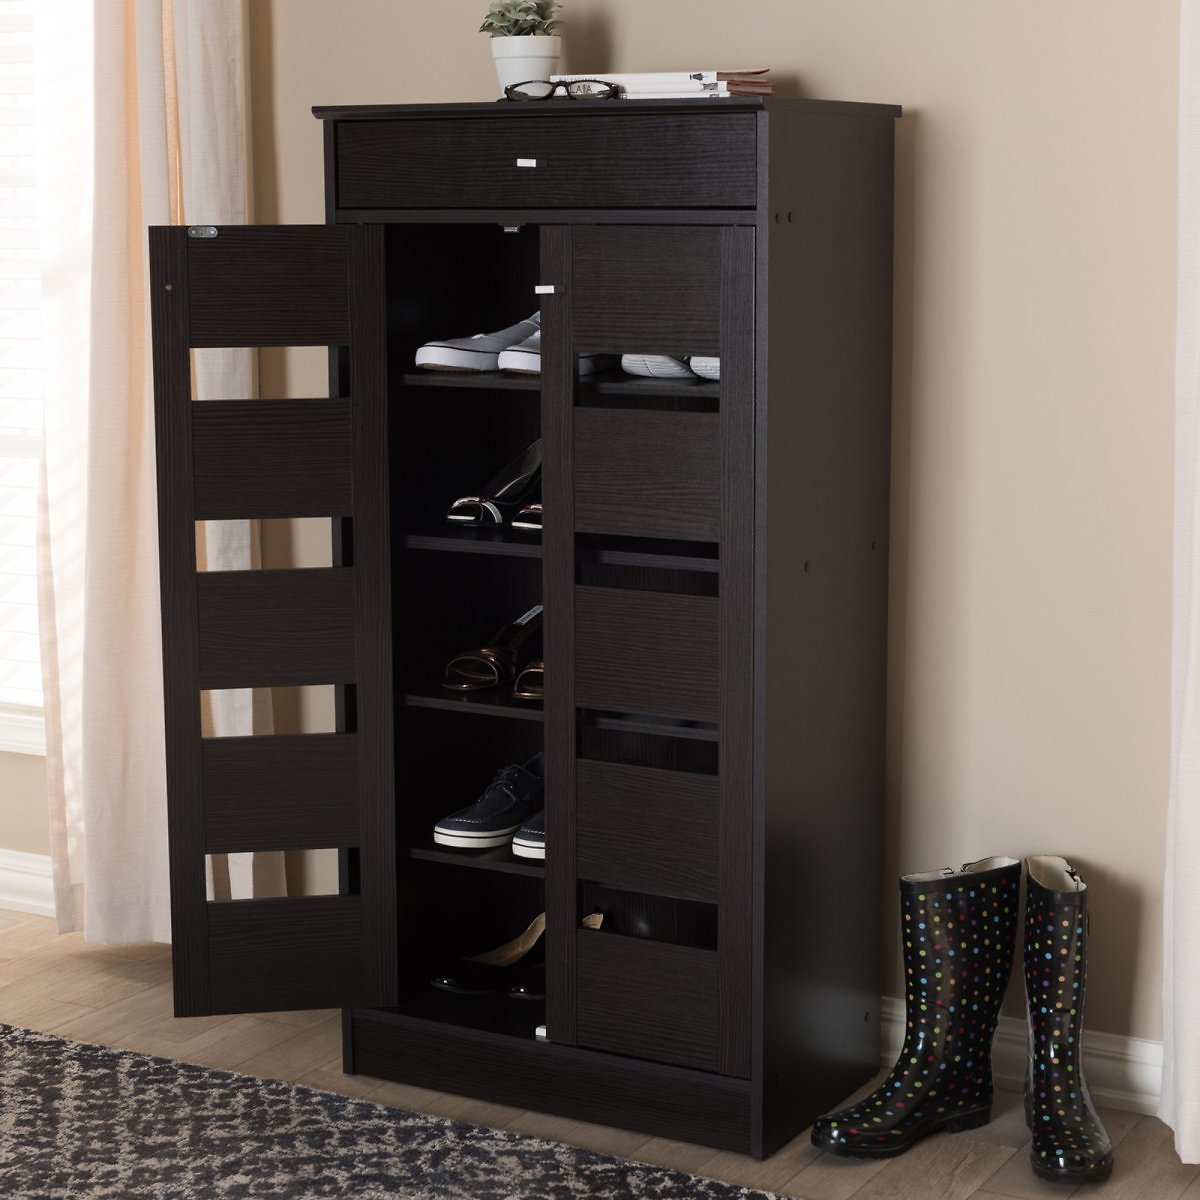 Baxton Studio Acadia Modern and Contemporary Wenge Brown Finished Shoe Cabinet